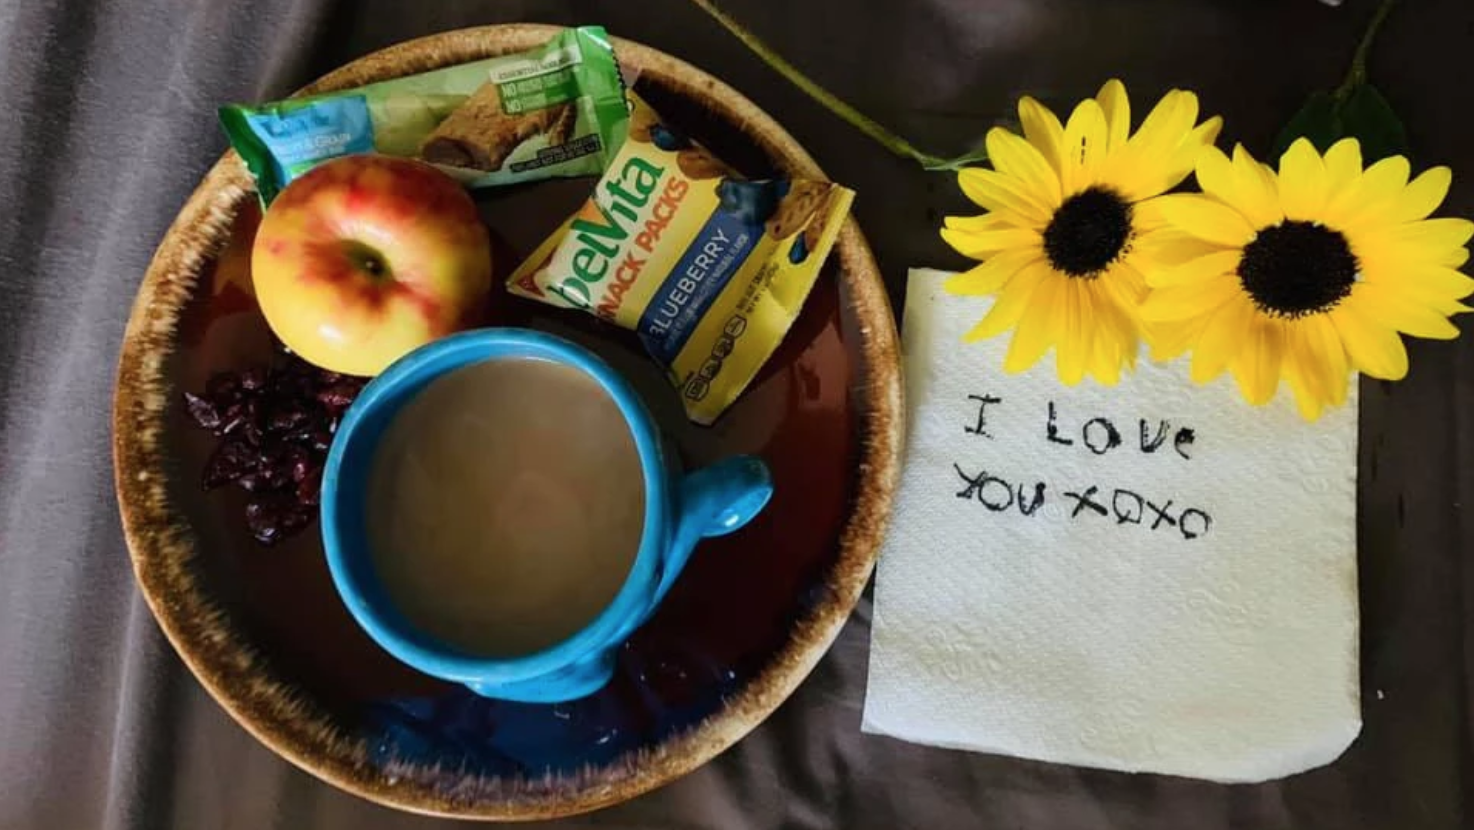 I love you note by breakfast